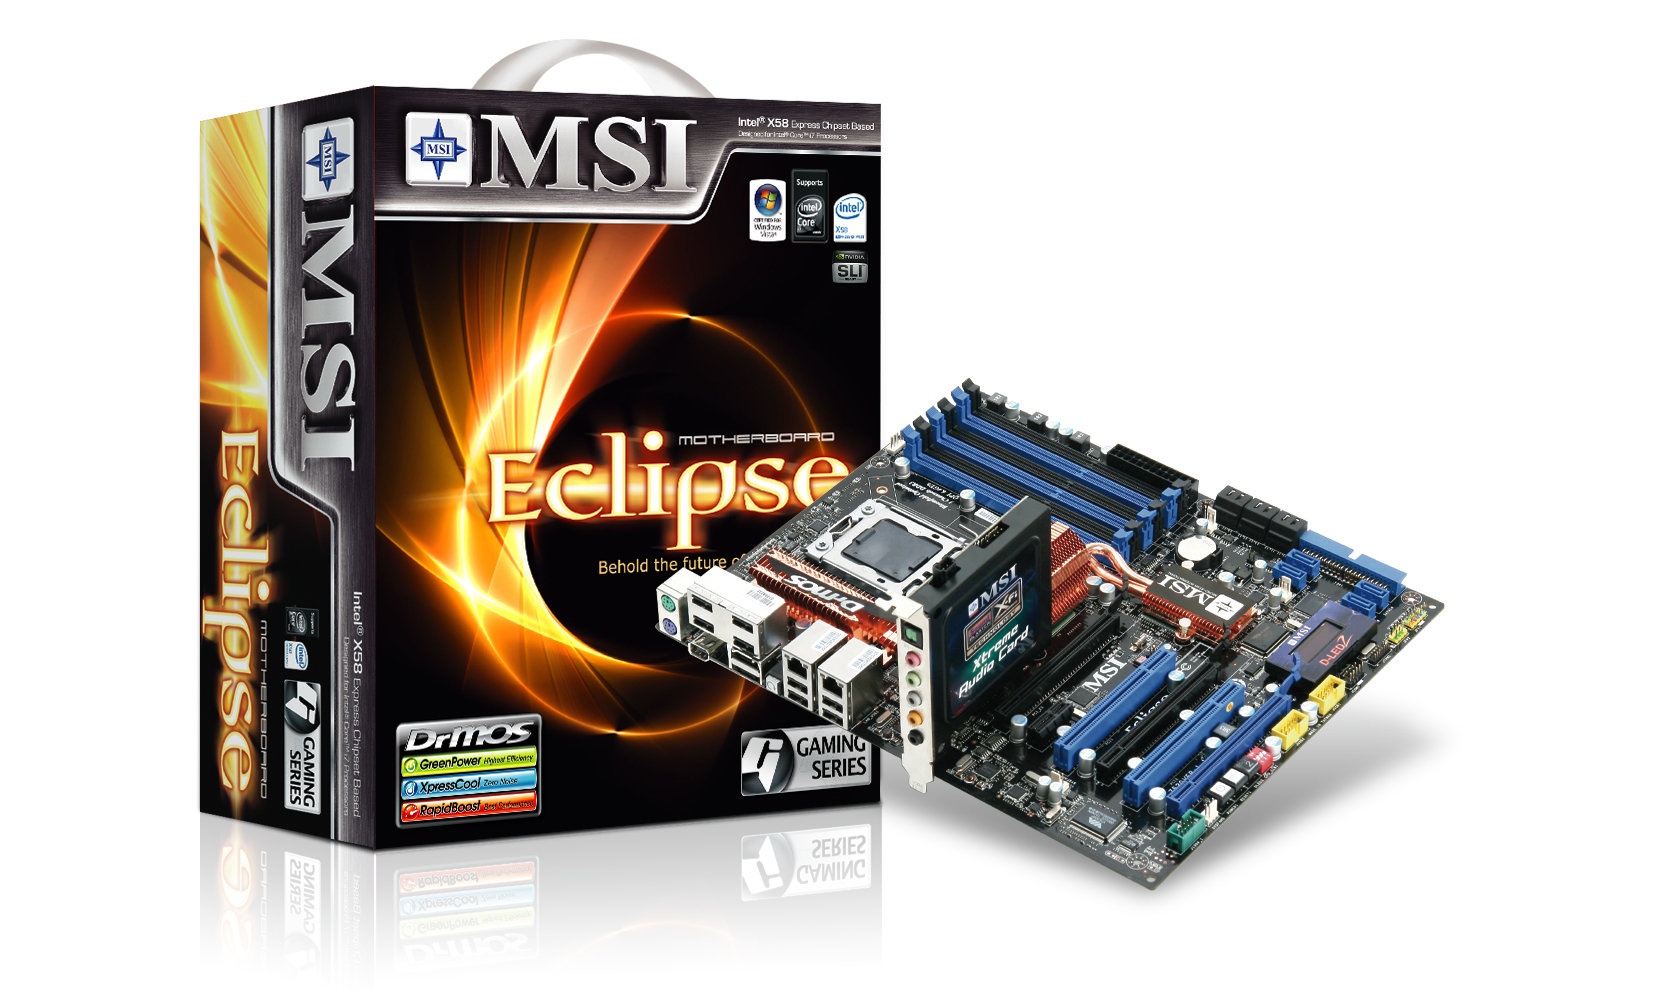 MSI Eclipse SLI